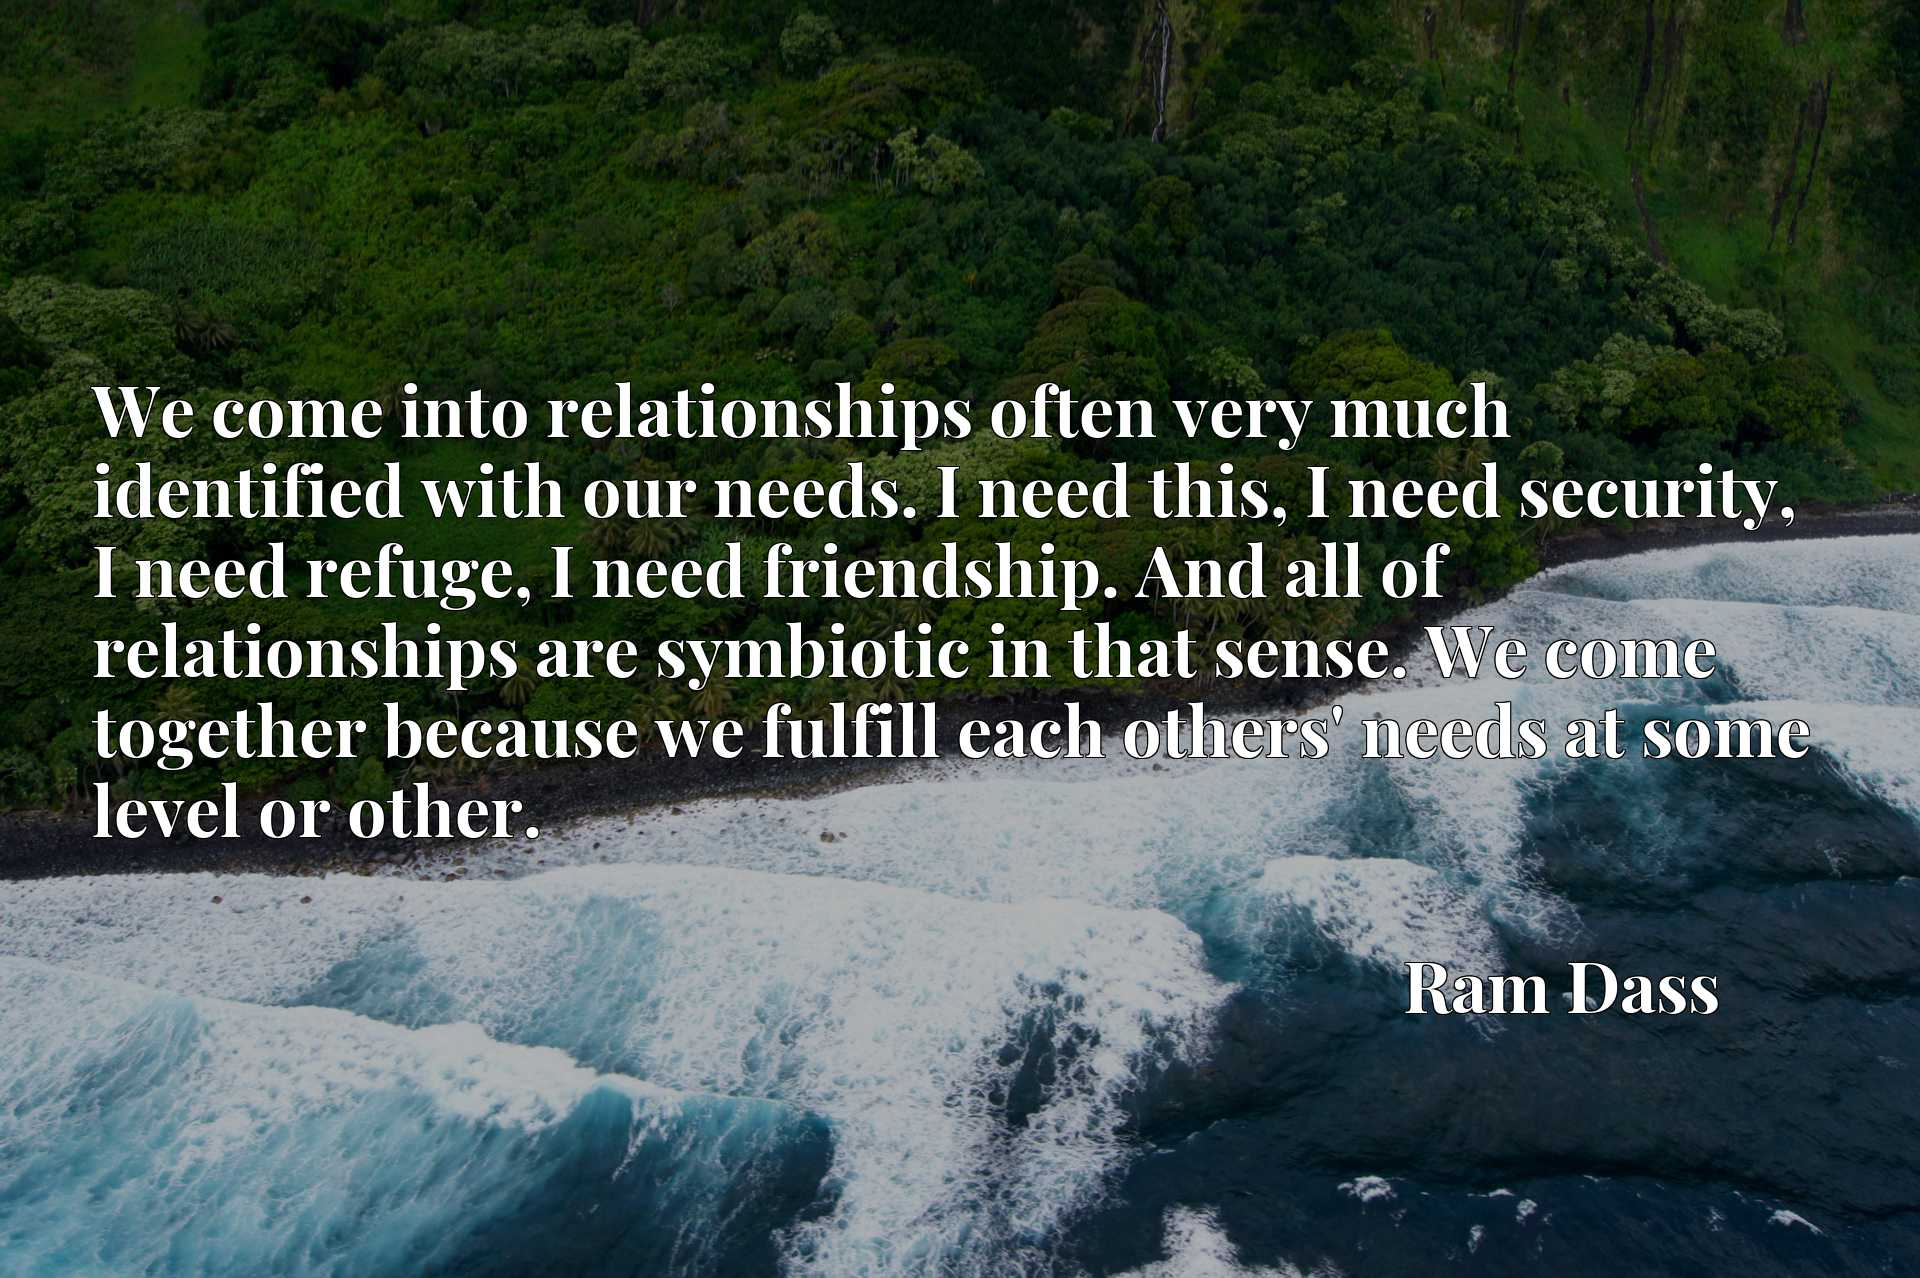 We come into relationships often very much identified with our needs. I need this, I need security, I need refuge, I need friendship. And all of relationships are symbiotic in that sense. We come together because we fulfill each others' needs at some level or other.